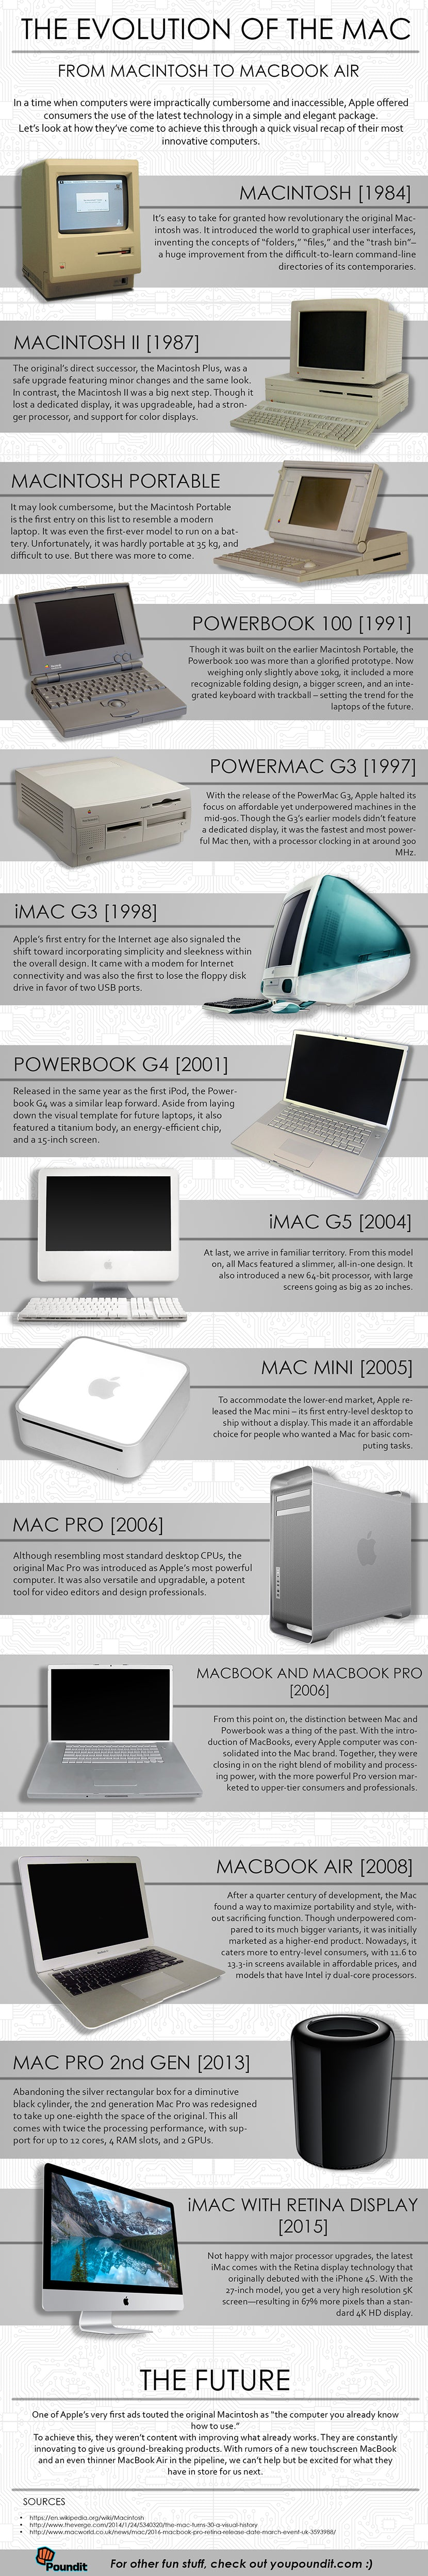 The Evolution of the Mac